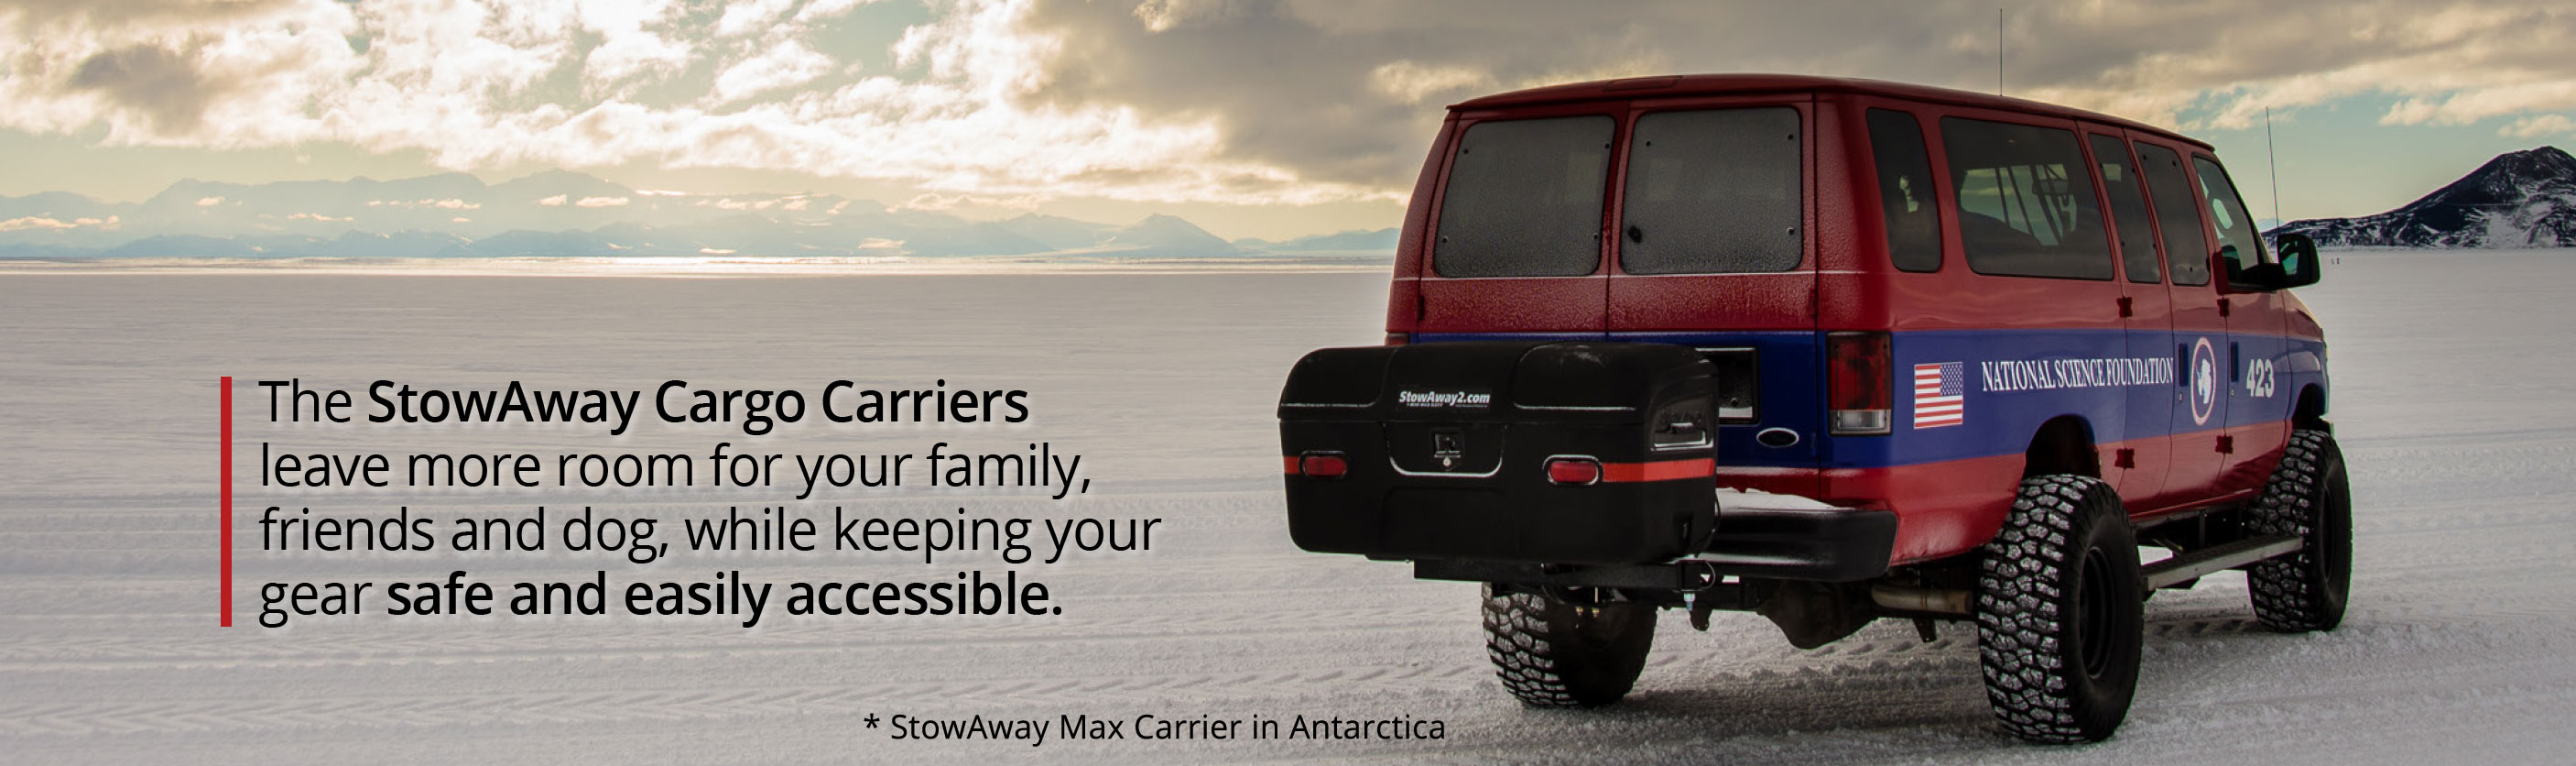 Stowaway Cargo Carriers leave more room for your family, friends and dog, while keeping your gear safe and easily accessible